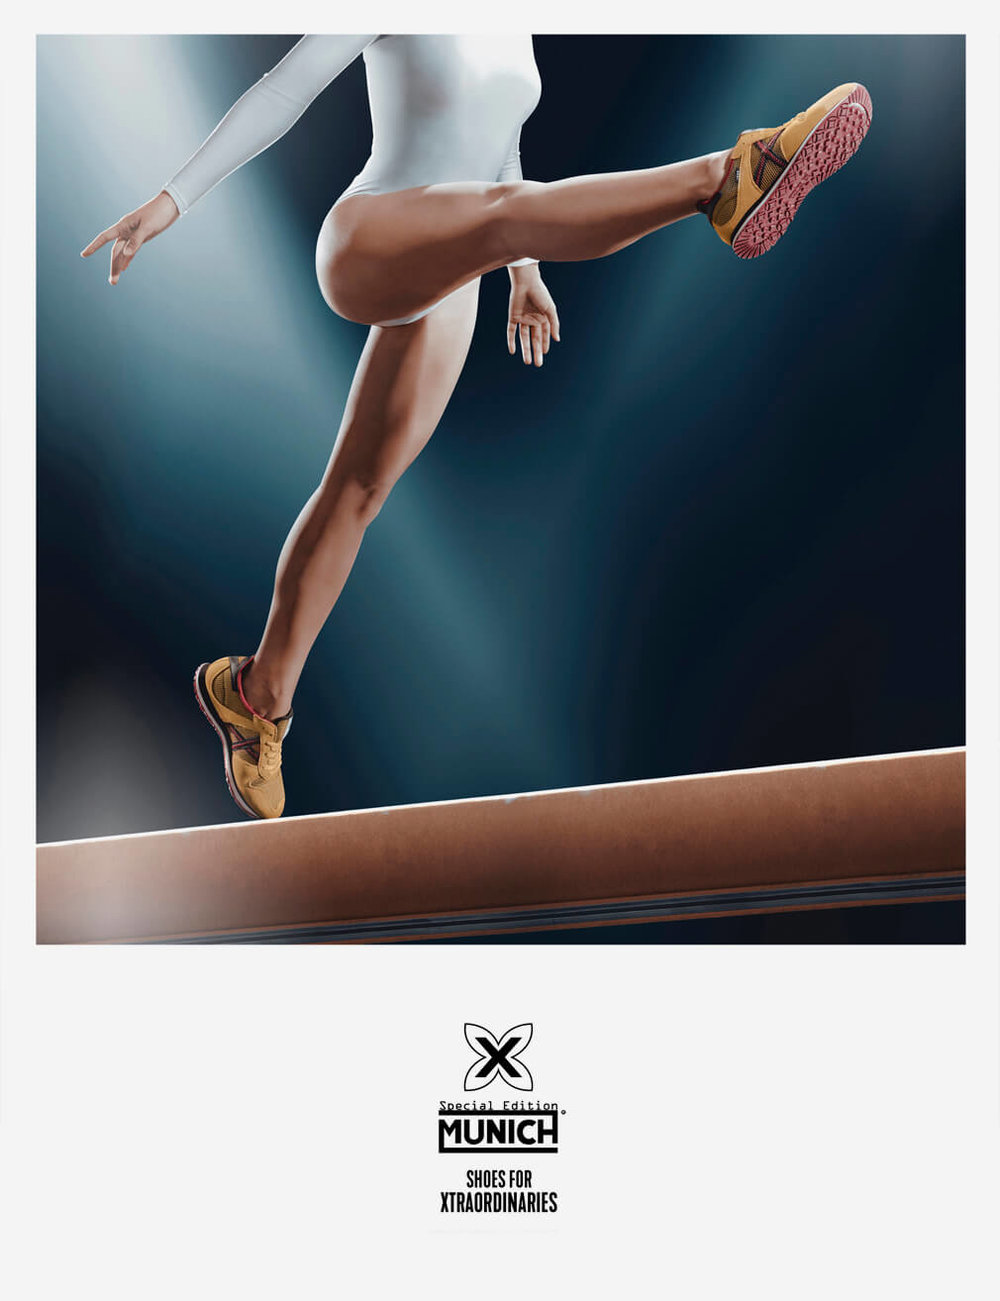 Munich Sports Campaign by Mikel Muruzabal Studio / Advertising photography in Spain